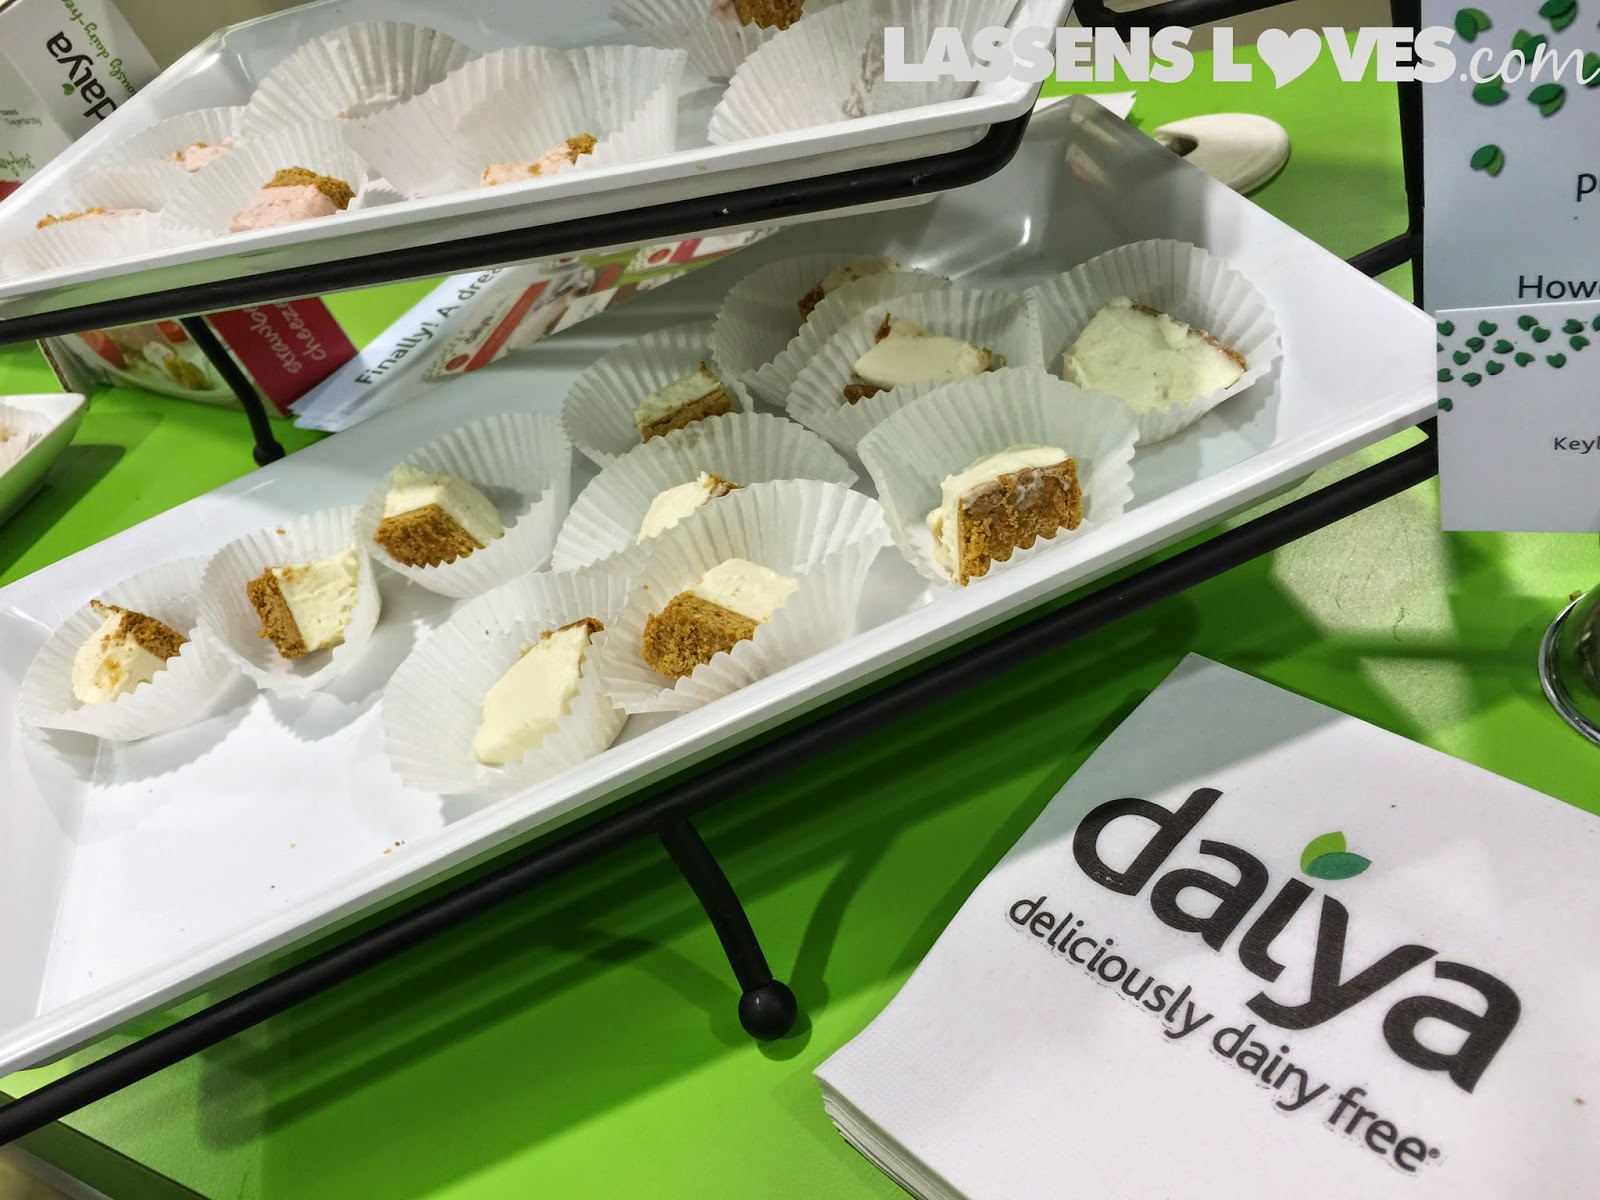 Expo+West+2015, Natural+Foods+Show, New+Natural+Products, daiya+cheesecake, dairy+free+diet, no+dairy+treats